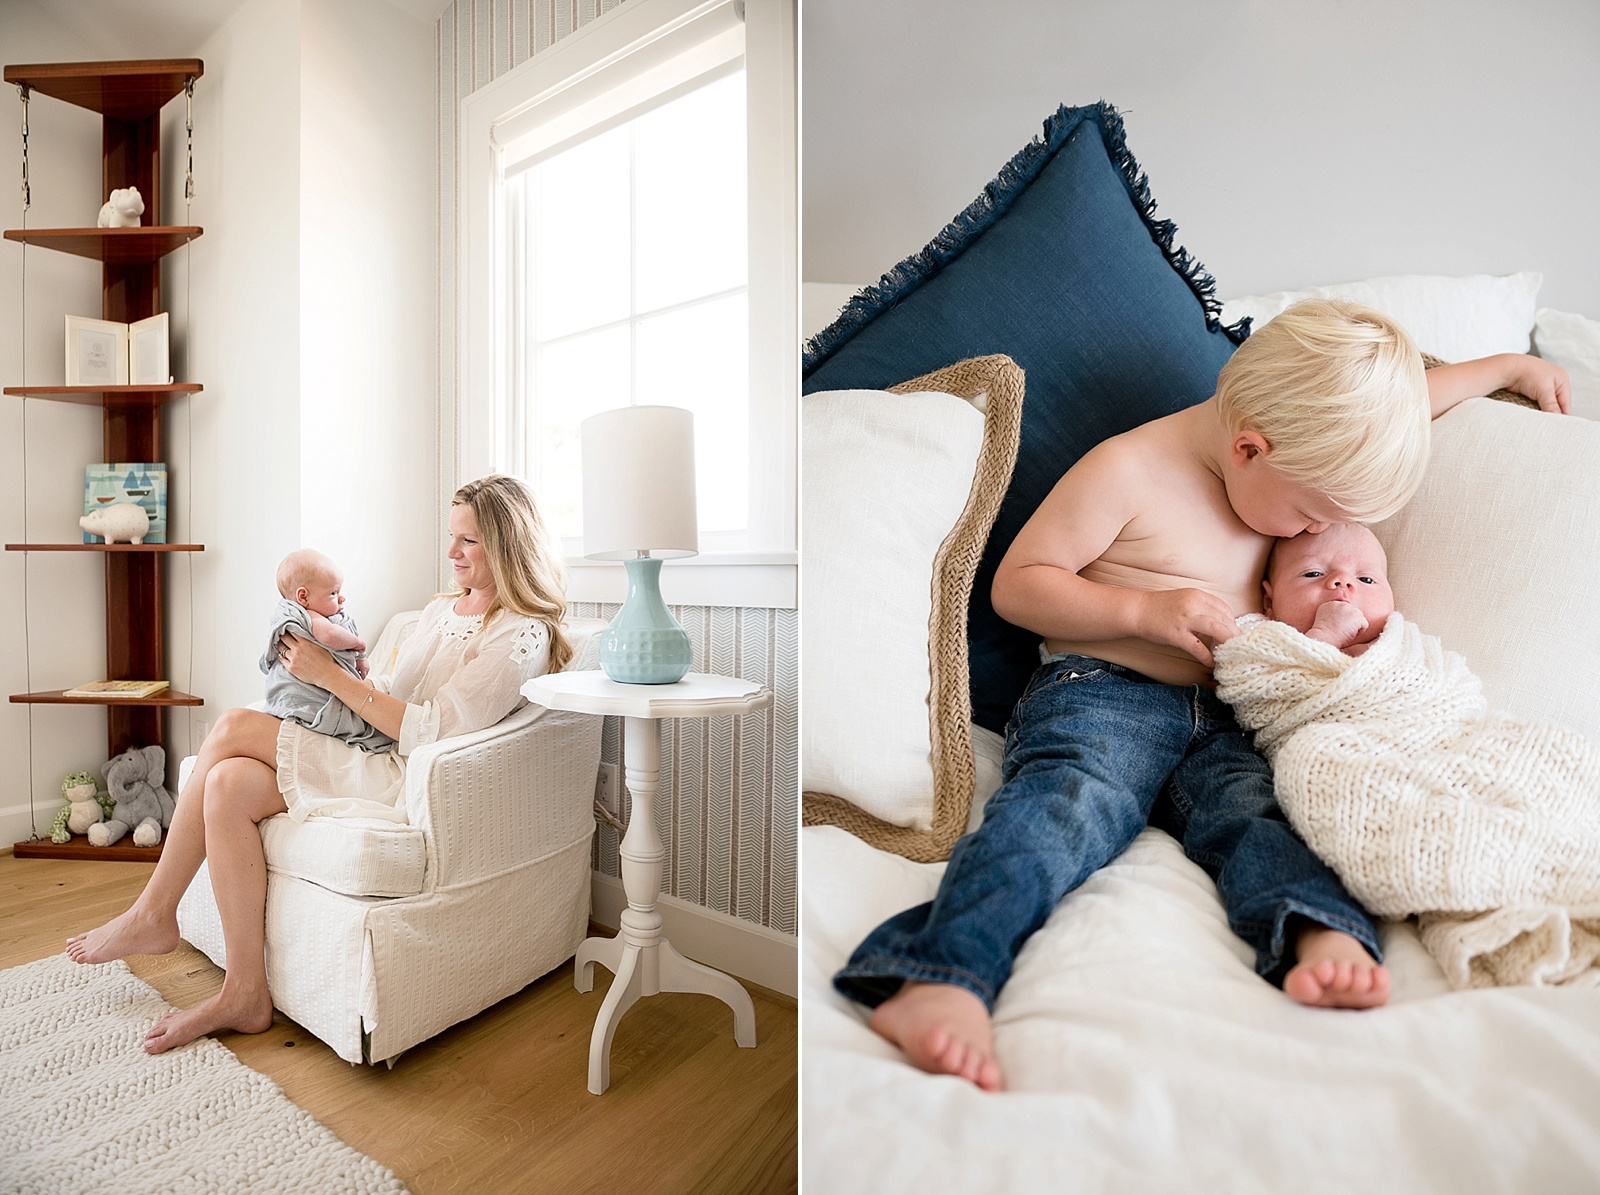 San Diego Family Portrait Session from photographer Lauren Nygard